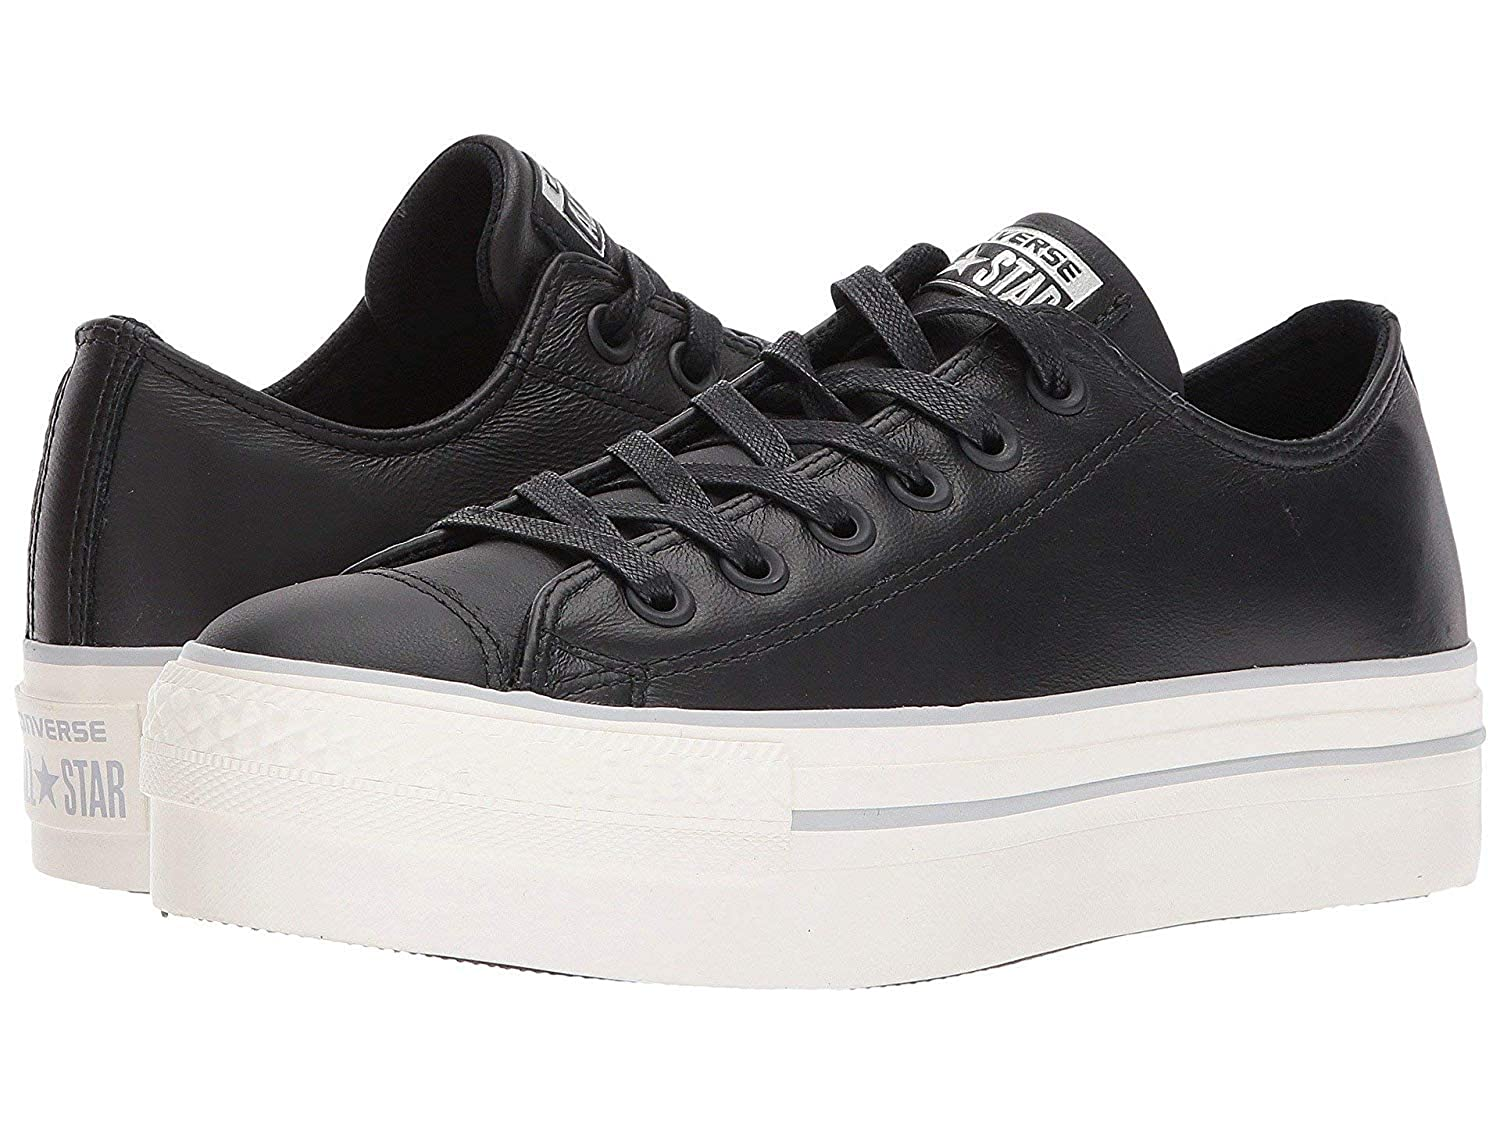 d4504648ddef Converse Women s Chuck Taylor All Star Platform Sneaker Black Leather 10  B(M) US  Buy Online at Low Prices in India - Amazon.in